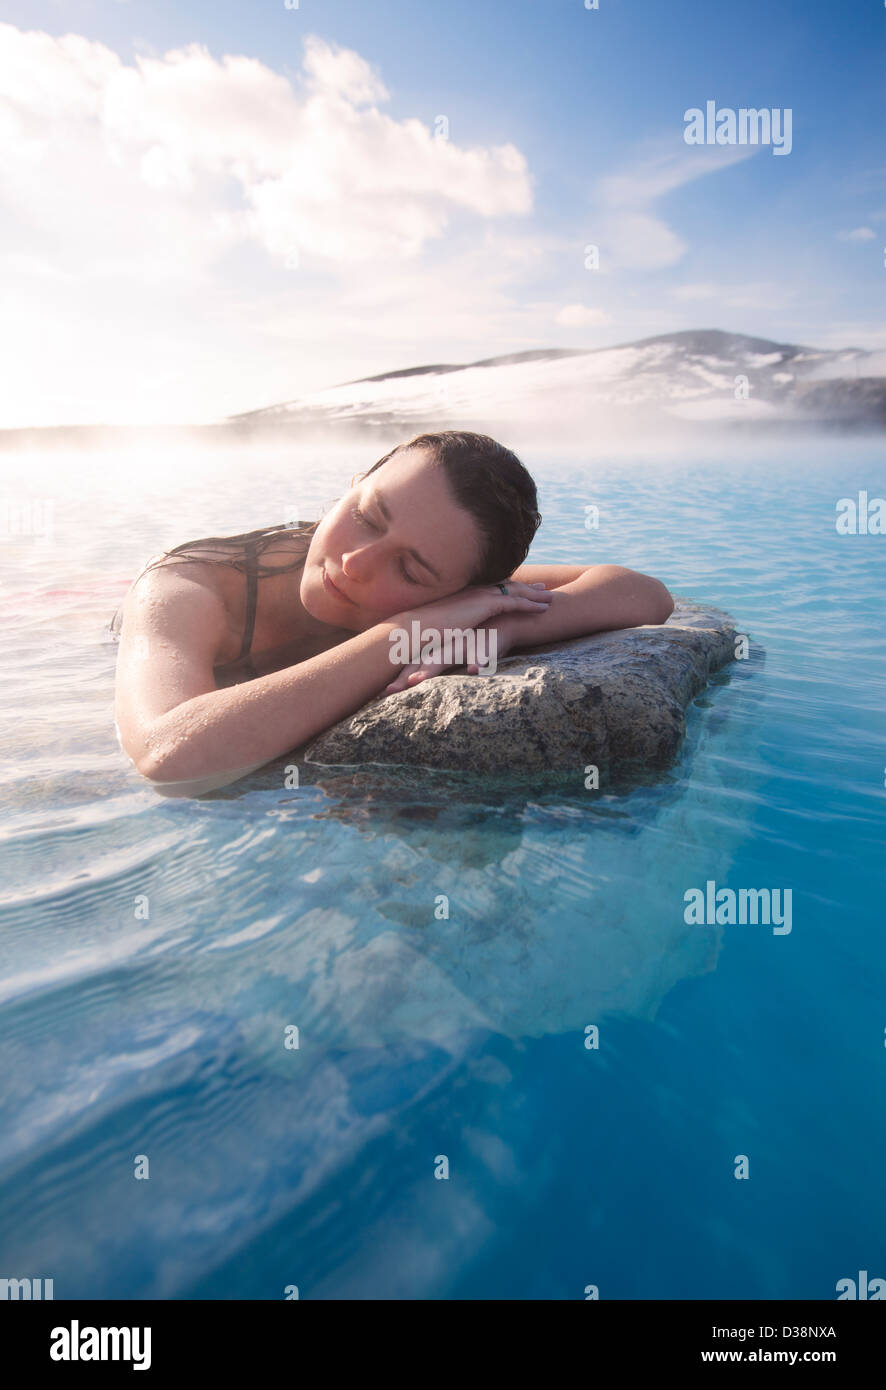 Woman relaxing in thermal lake - Stock Image